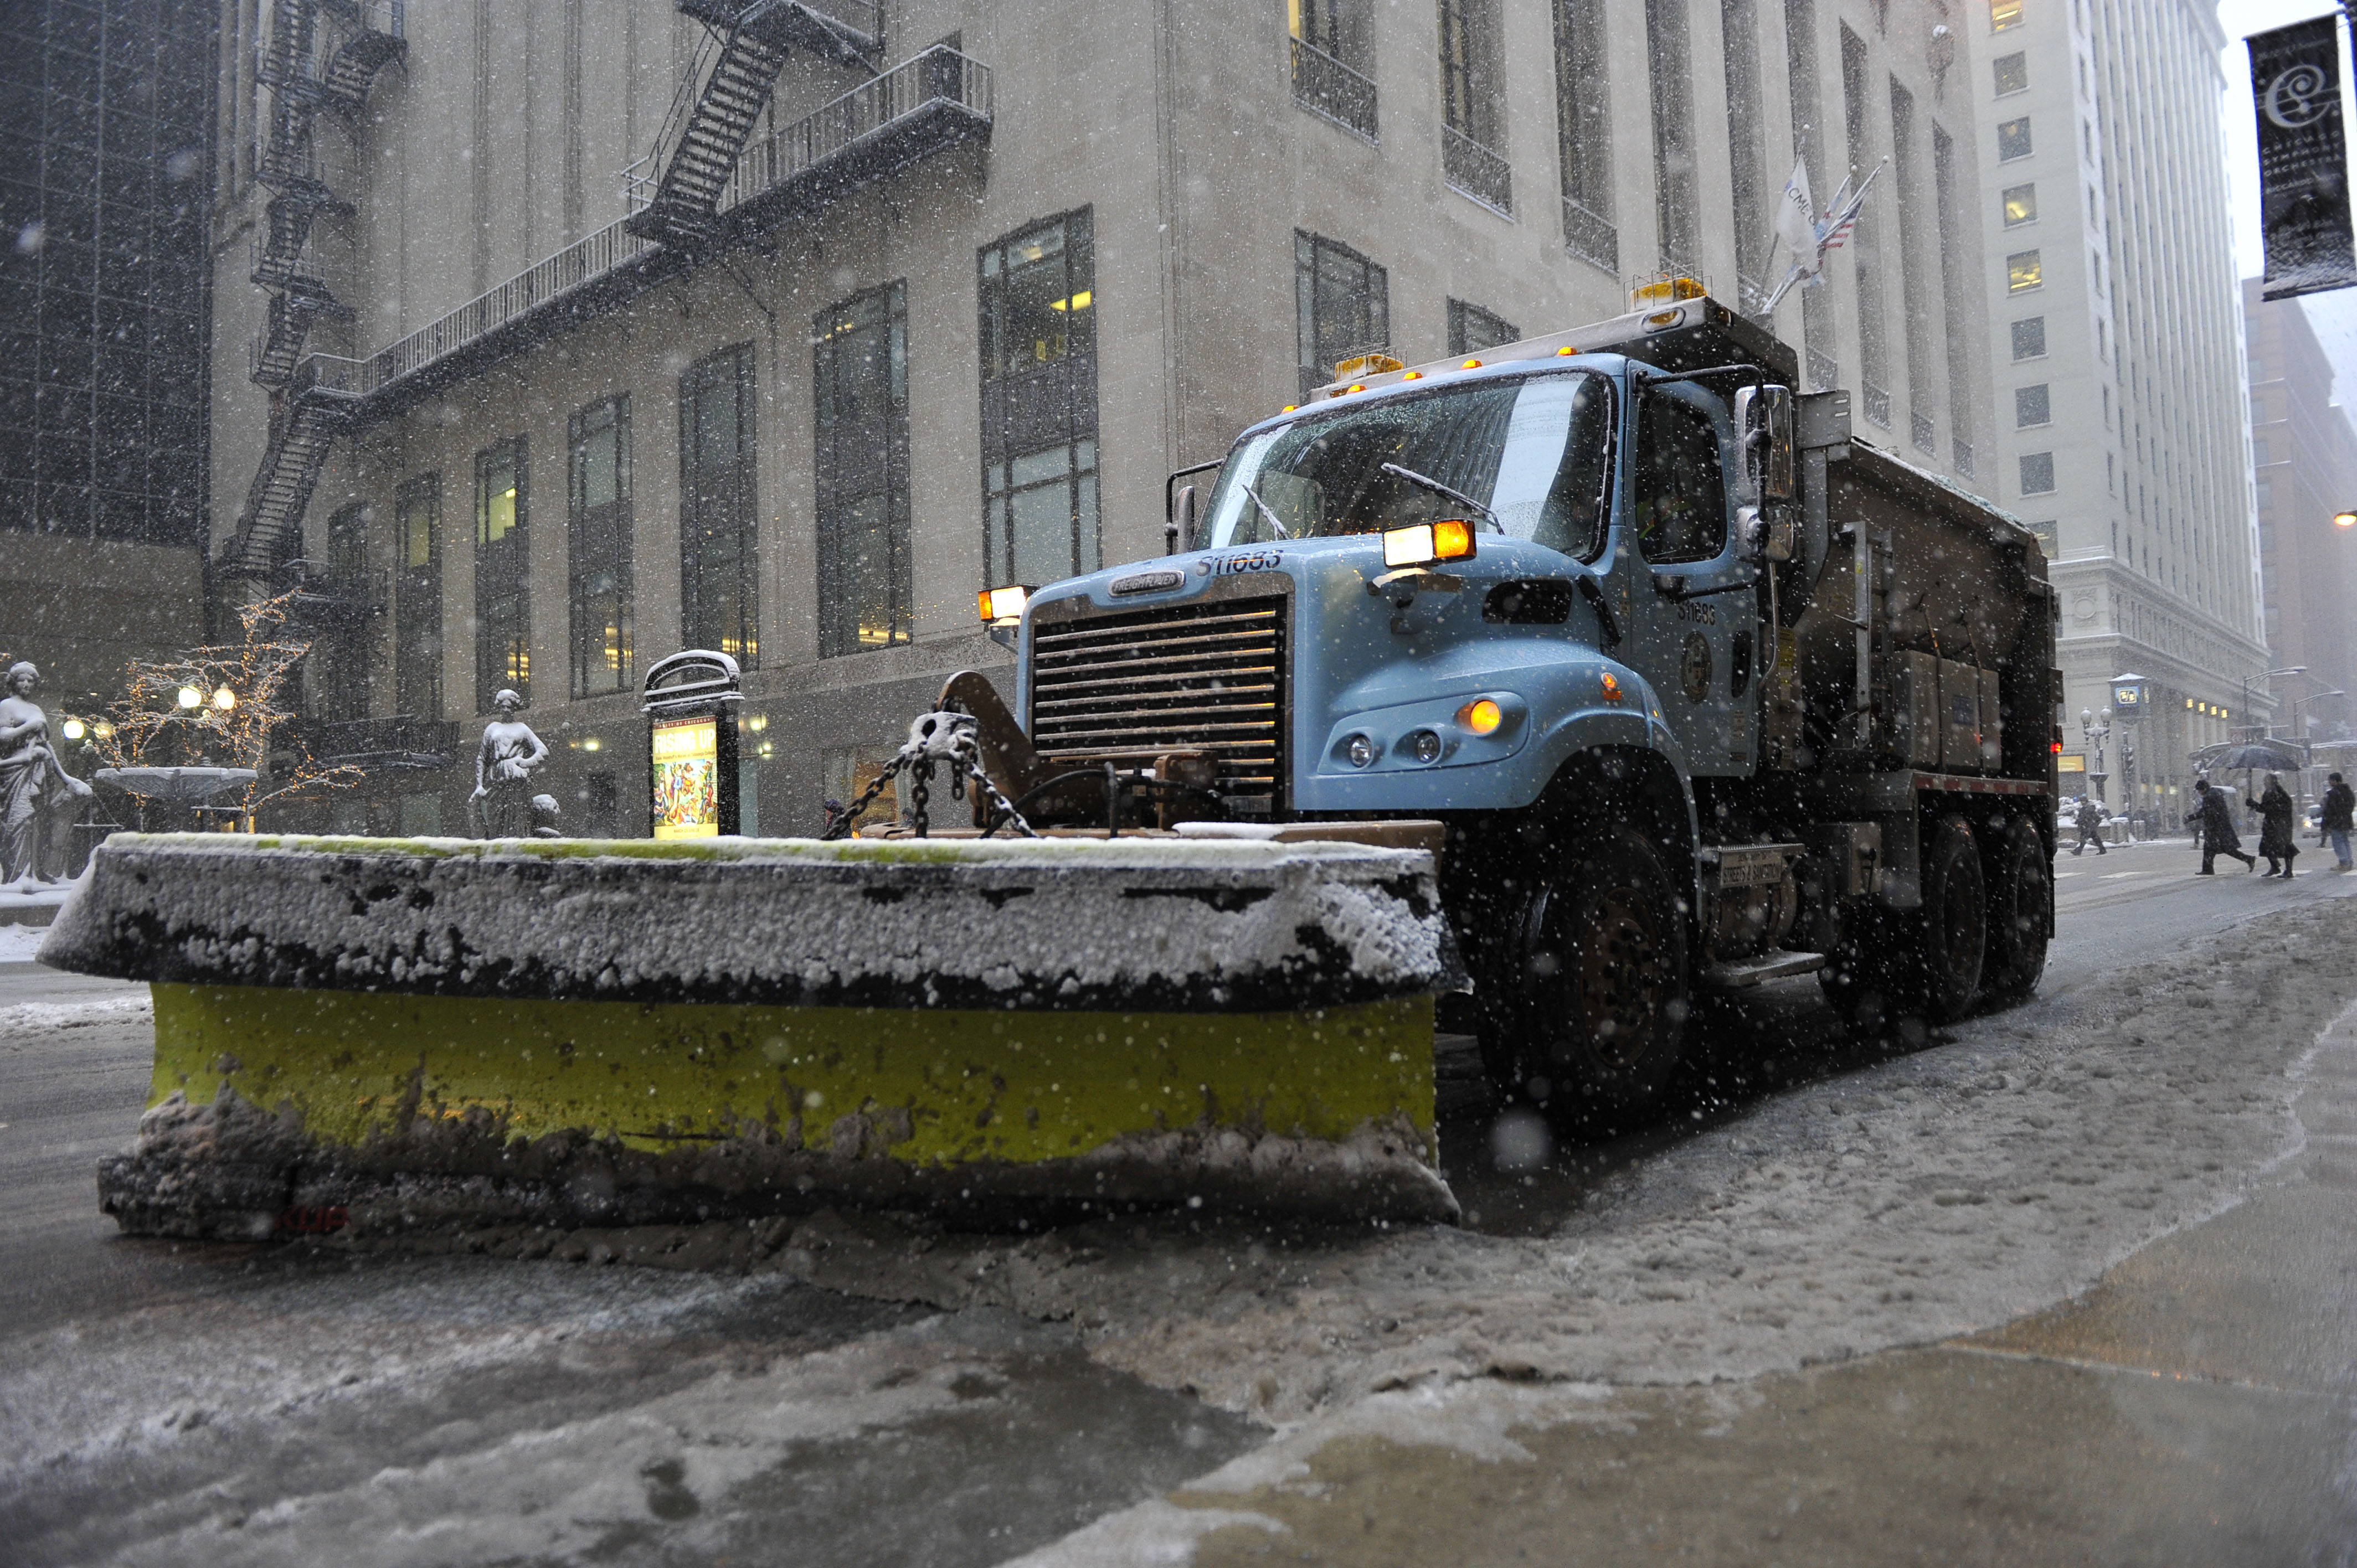 Officials Offer Winter Safety Tips for Motorists